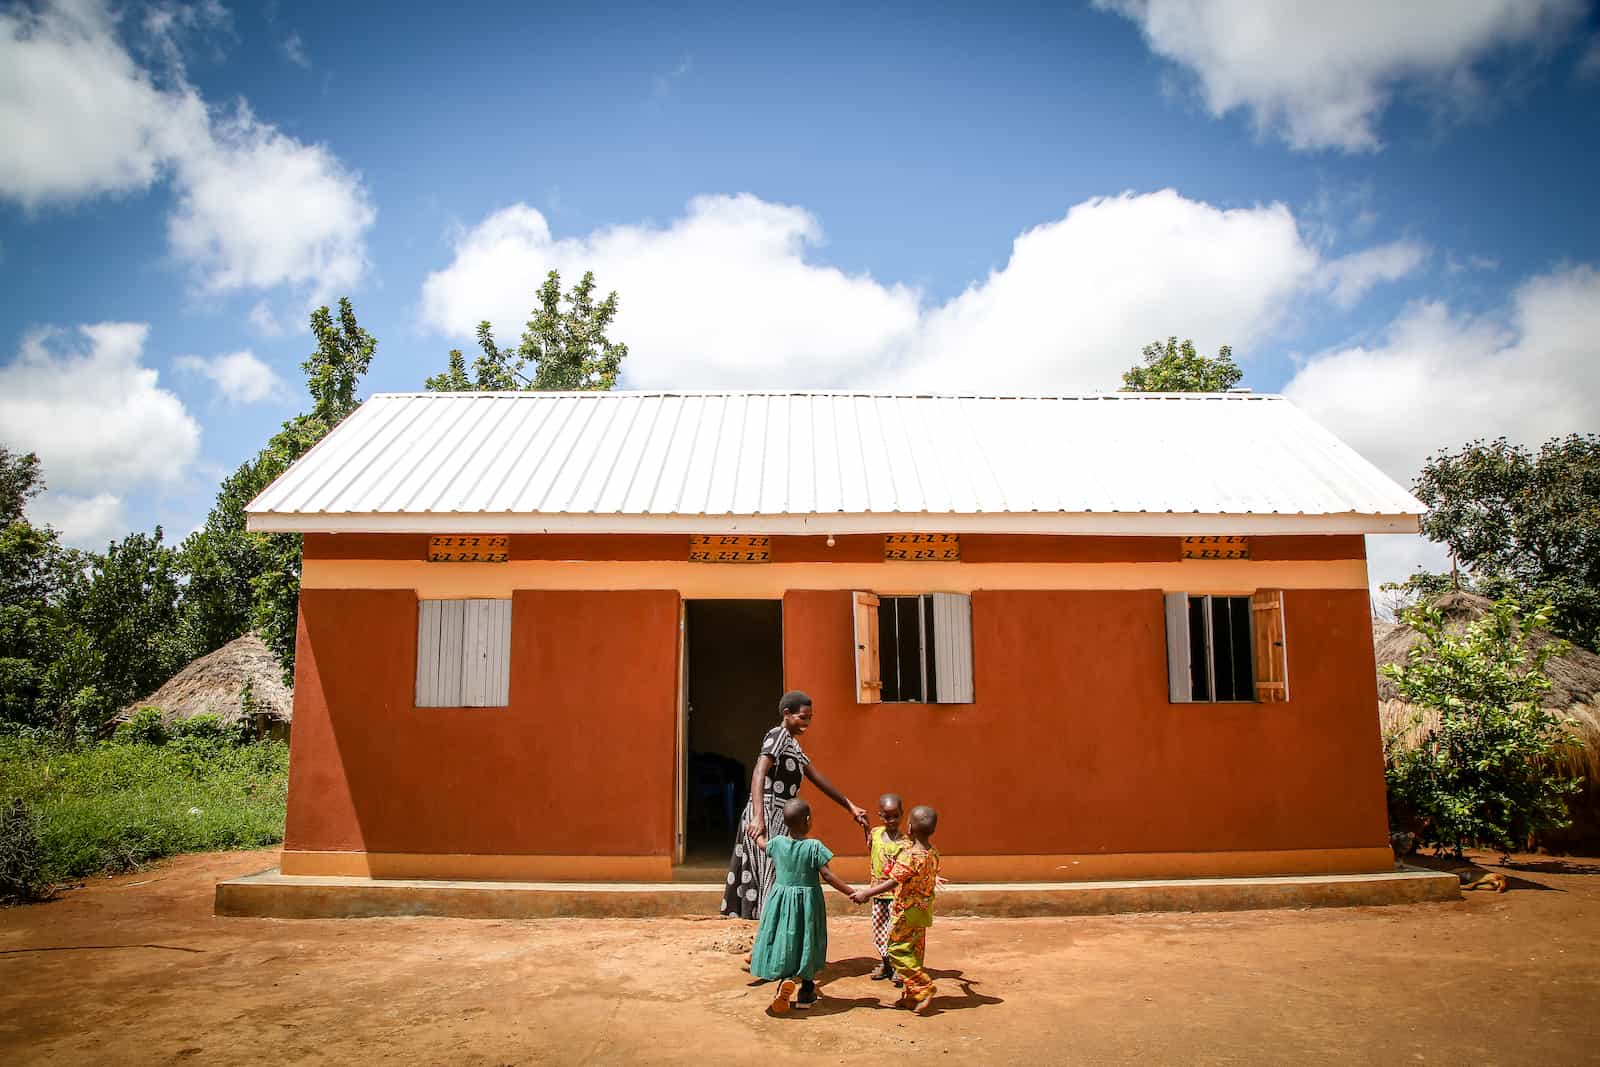 A mother and three children dance in a circle in front of a home with a metal roof.